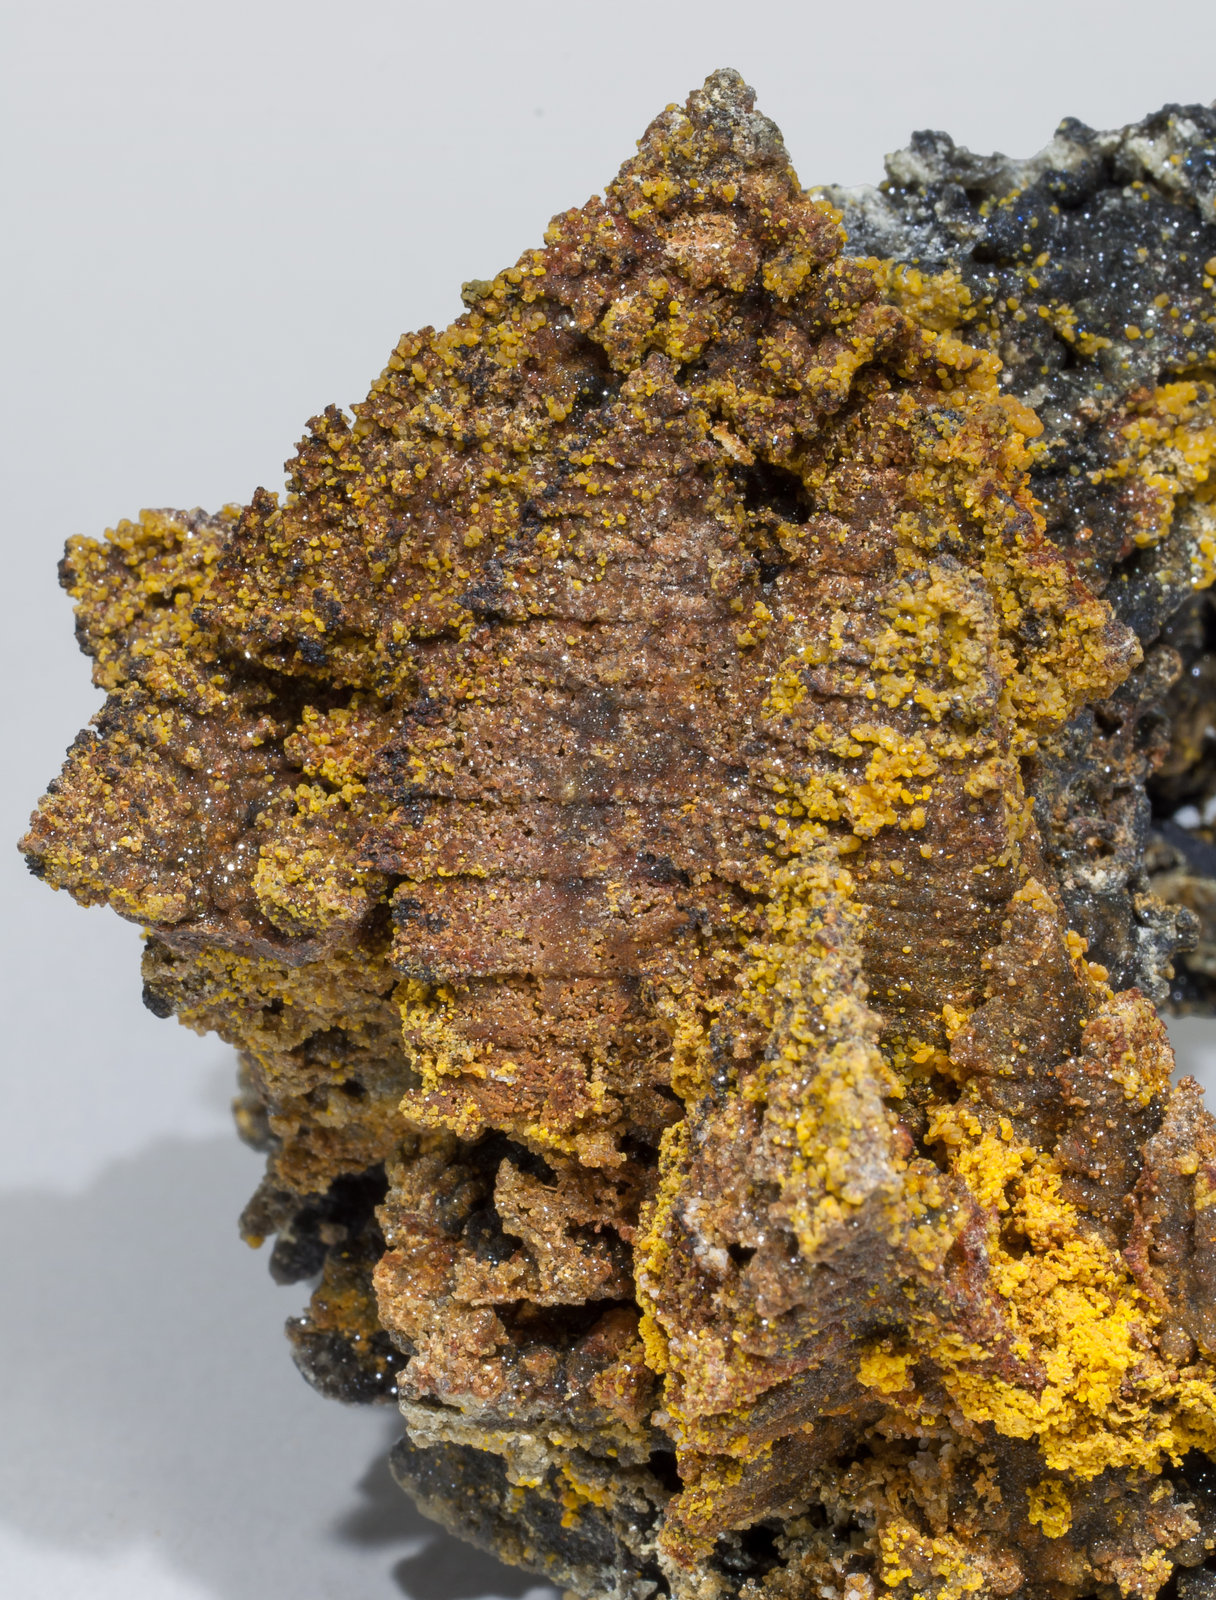 specimens/s_imagesAC6/Willemite-MC60AC6d.jpg